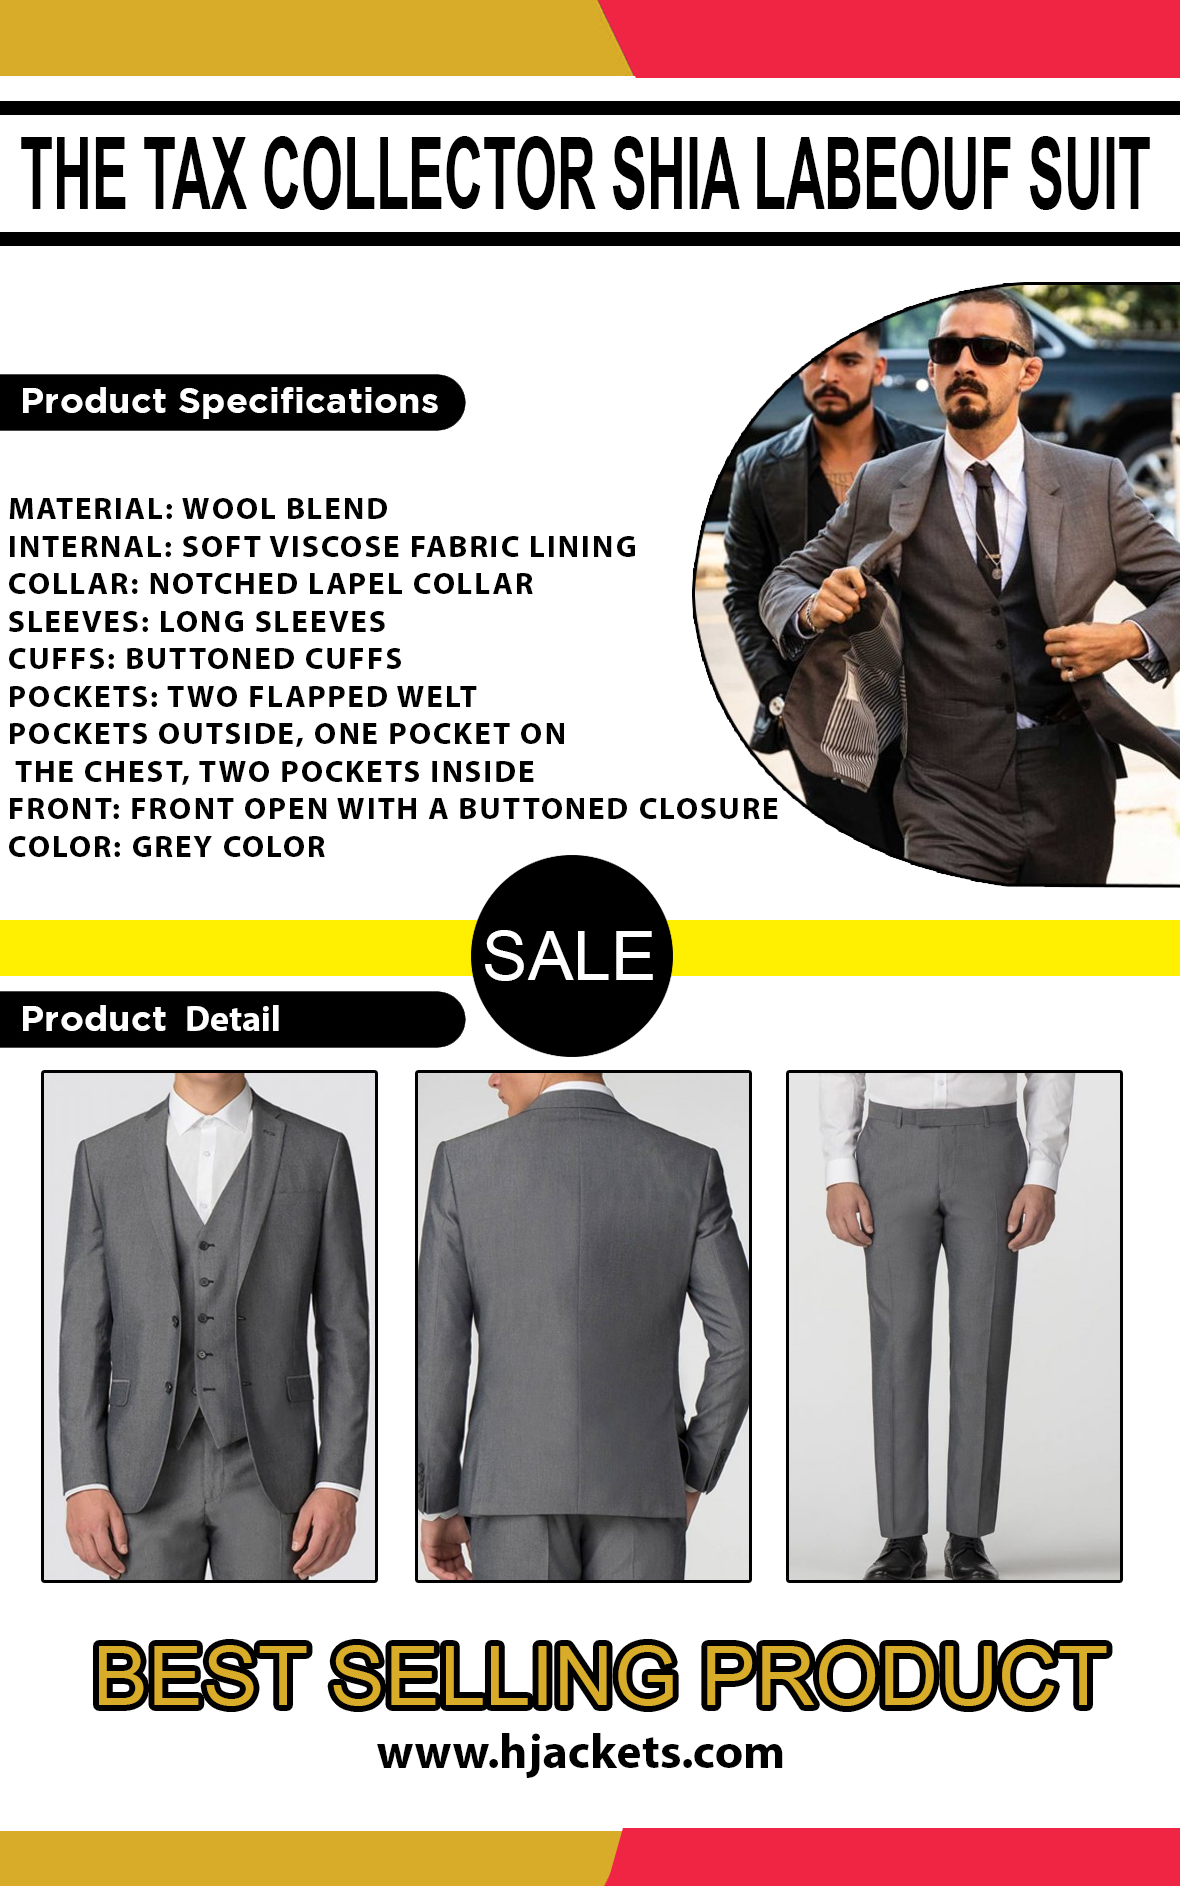 The-Tax-Collector-Shia-Labeouf-Suit-info